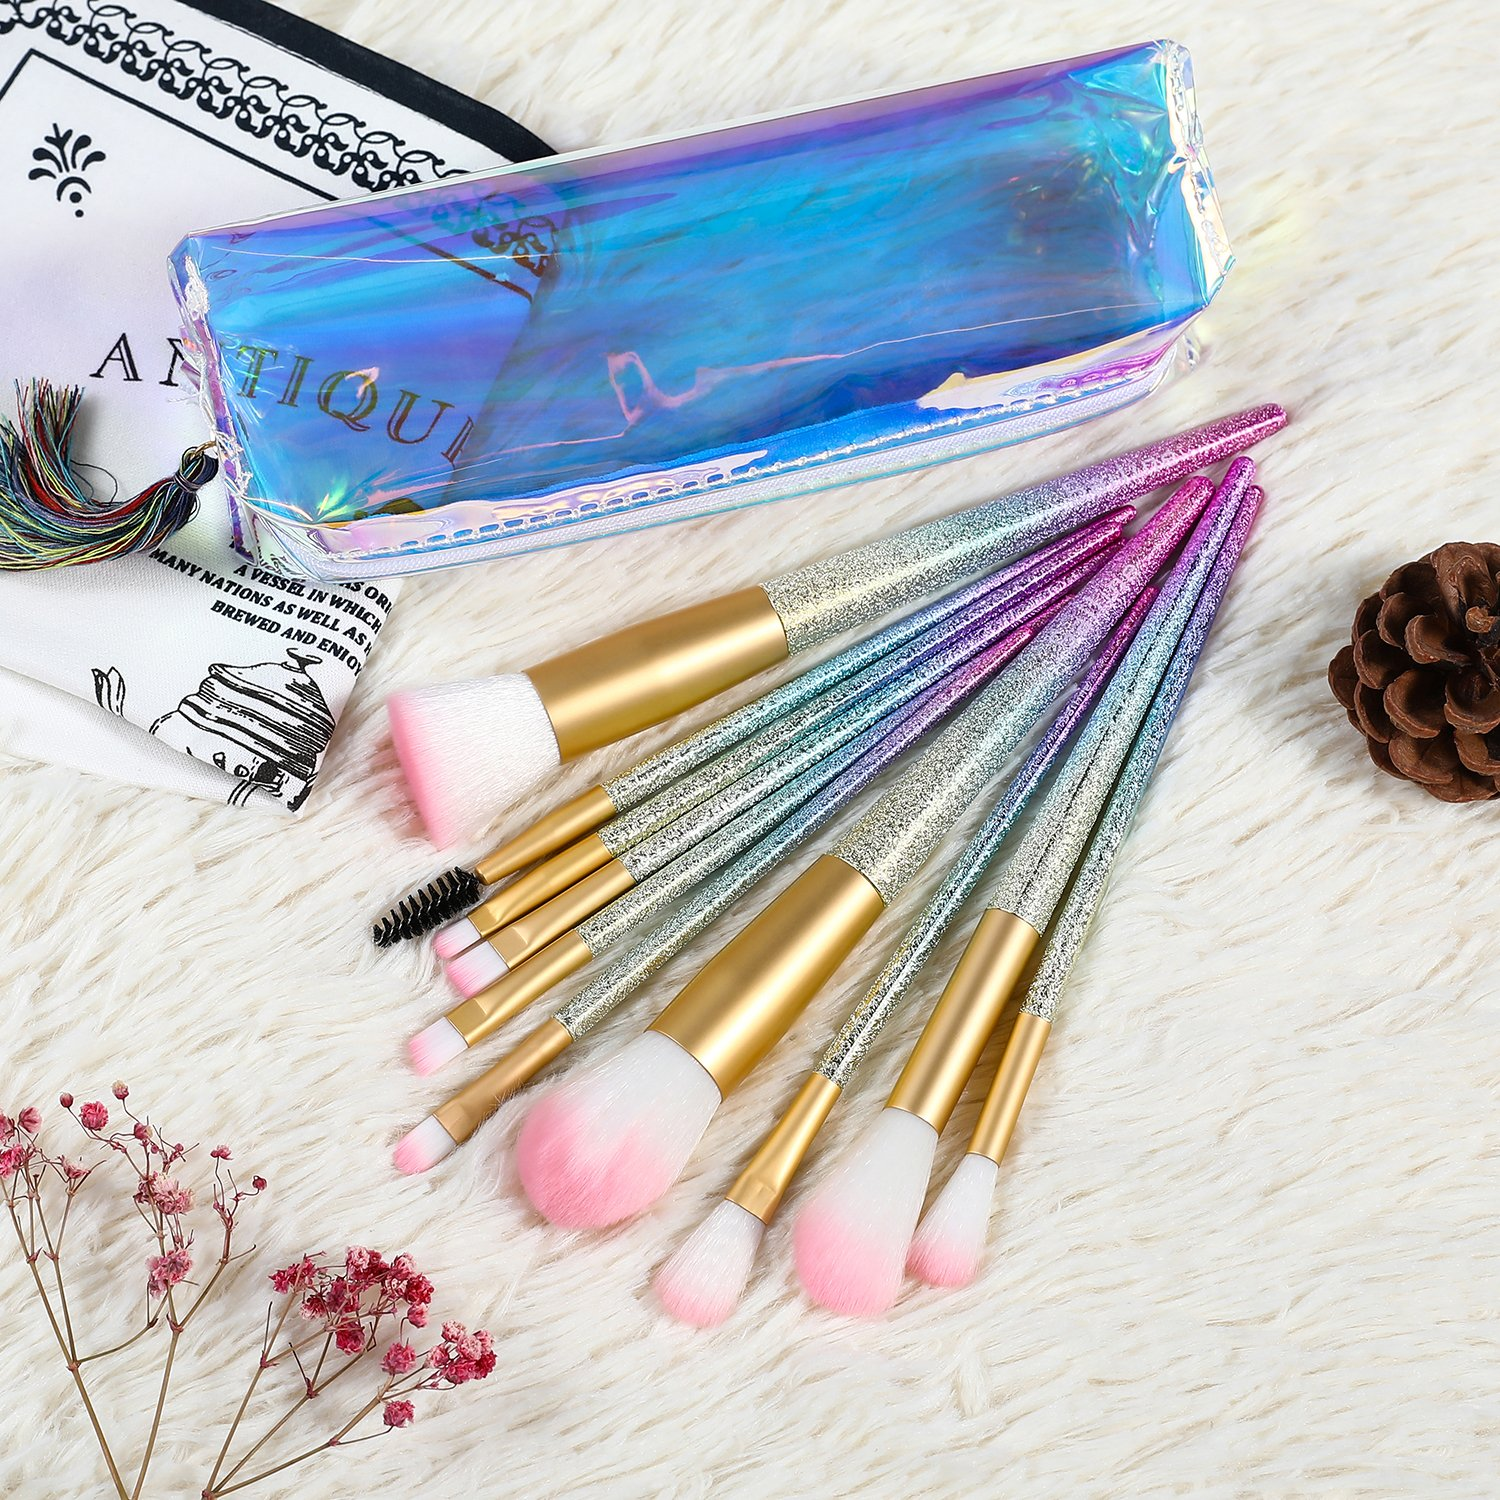 SAILINE 2018 NEW Colorful Makeup Brushes Sets 10Pcs Professional Foundation Powder Eyeshadow Blending Concealer Cosmetics Tools Rainbow Gradient Colors kits With Storage Bag